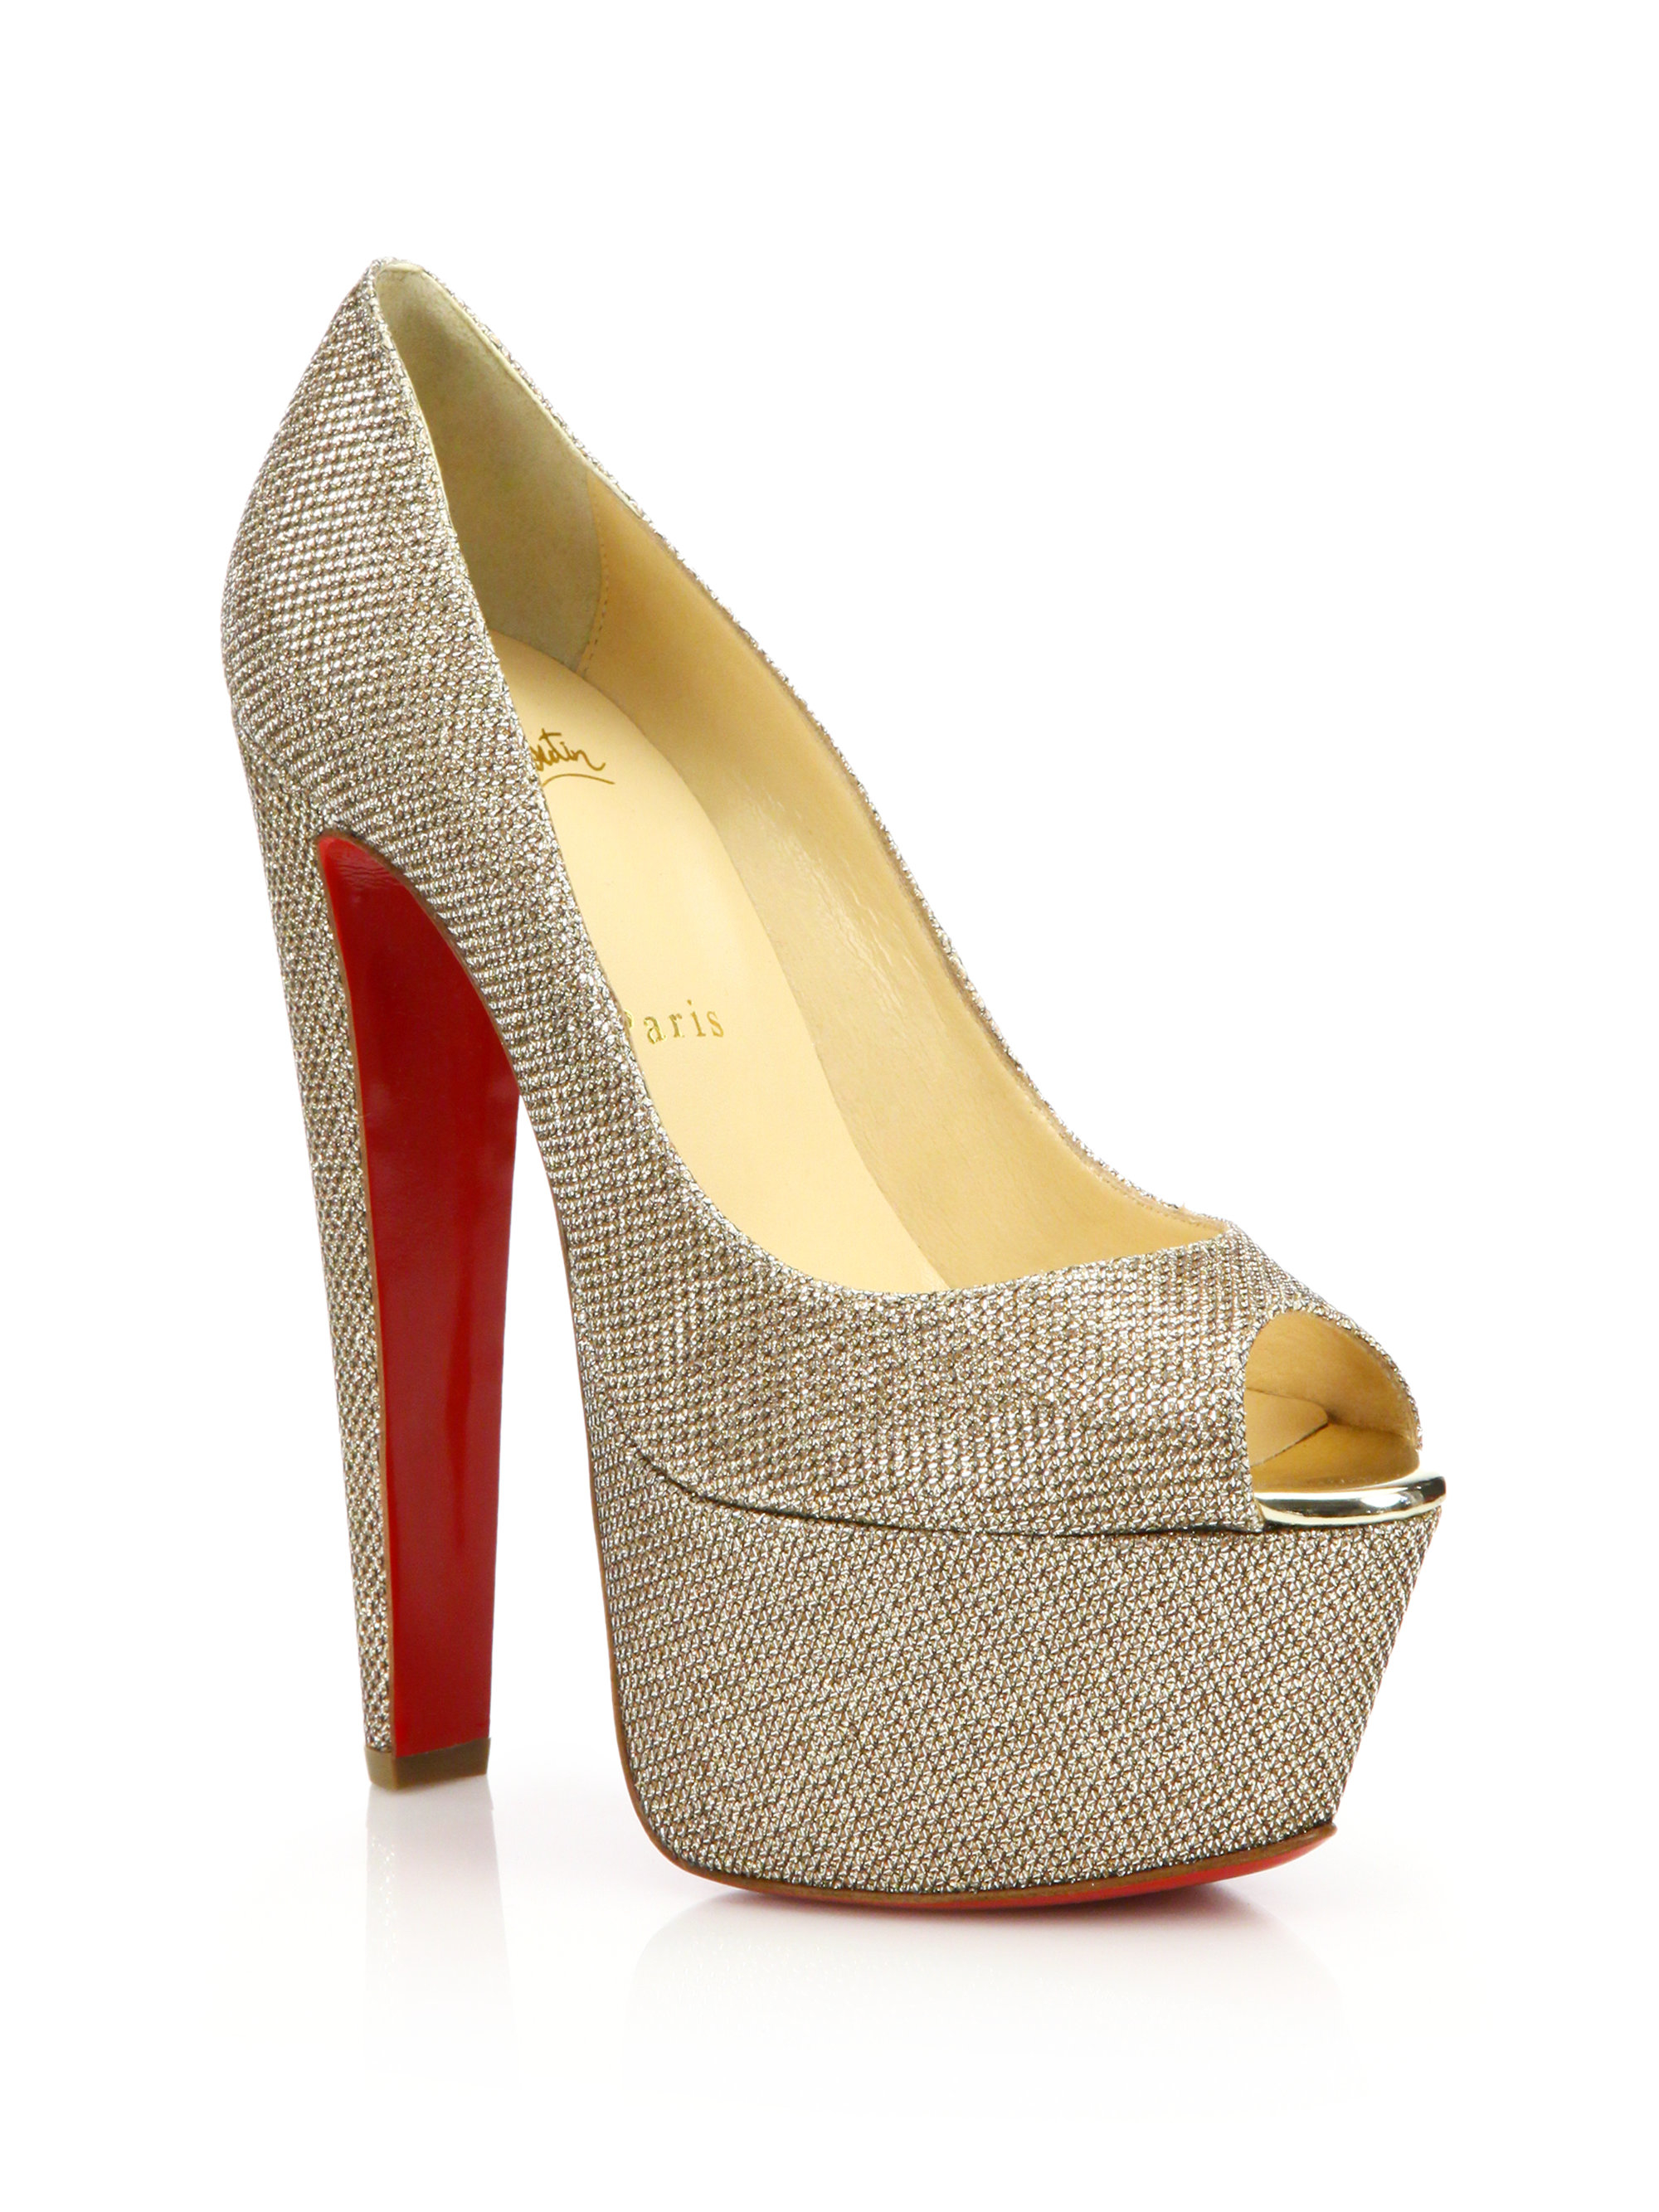 Christian Louboutin Canvas Pointed-Toe Pumps